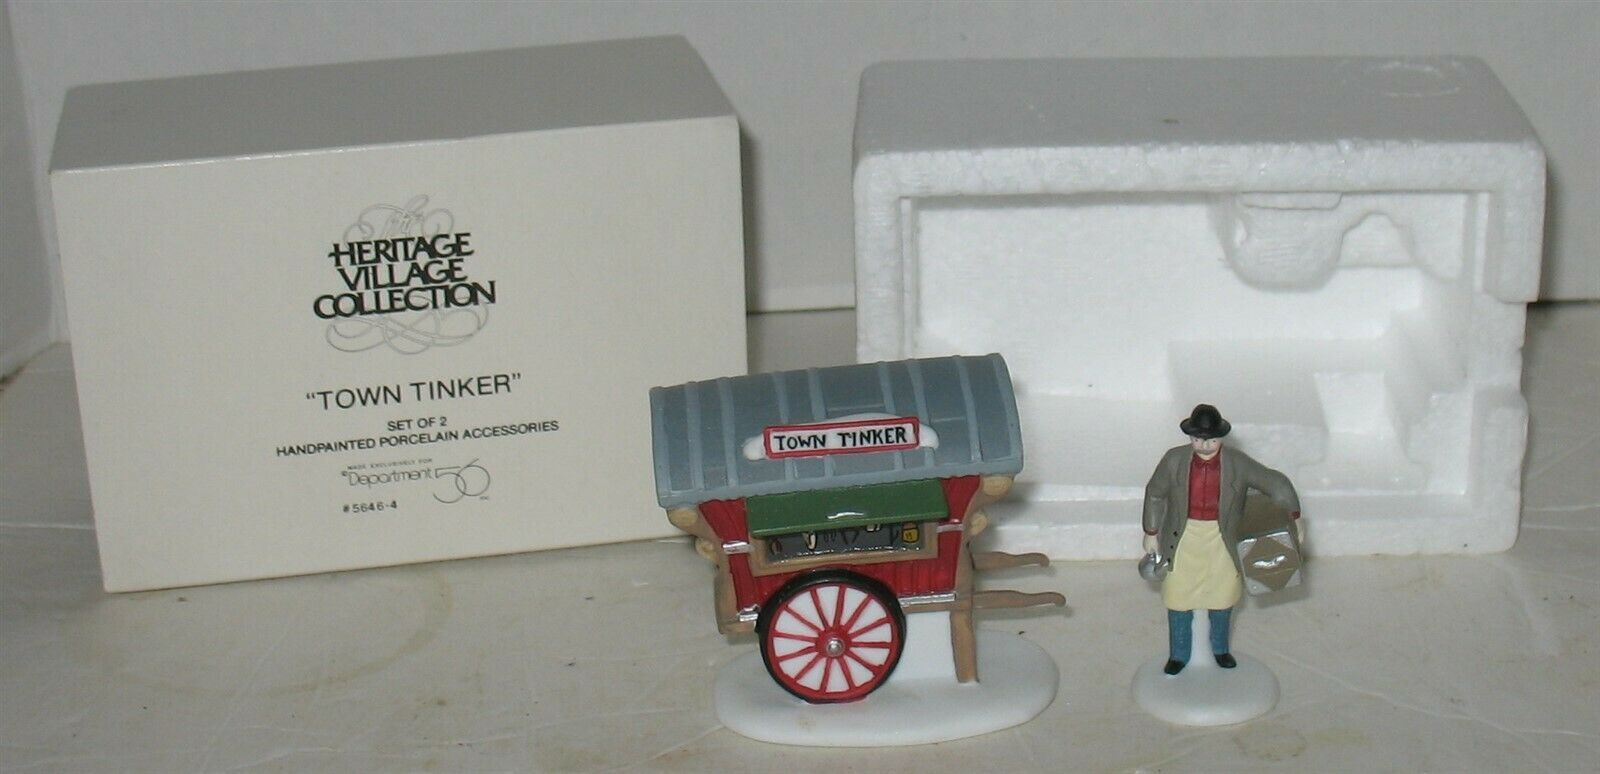 Vtg Department 56 Town Tinker Christmas Heritage Village Accessory in Box - $17.82